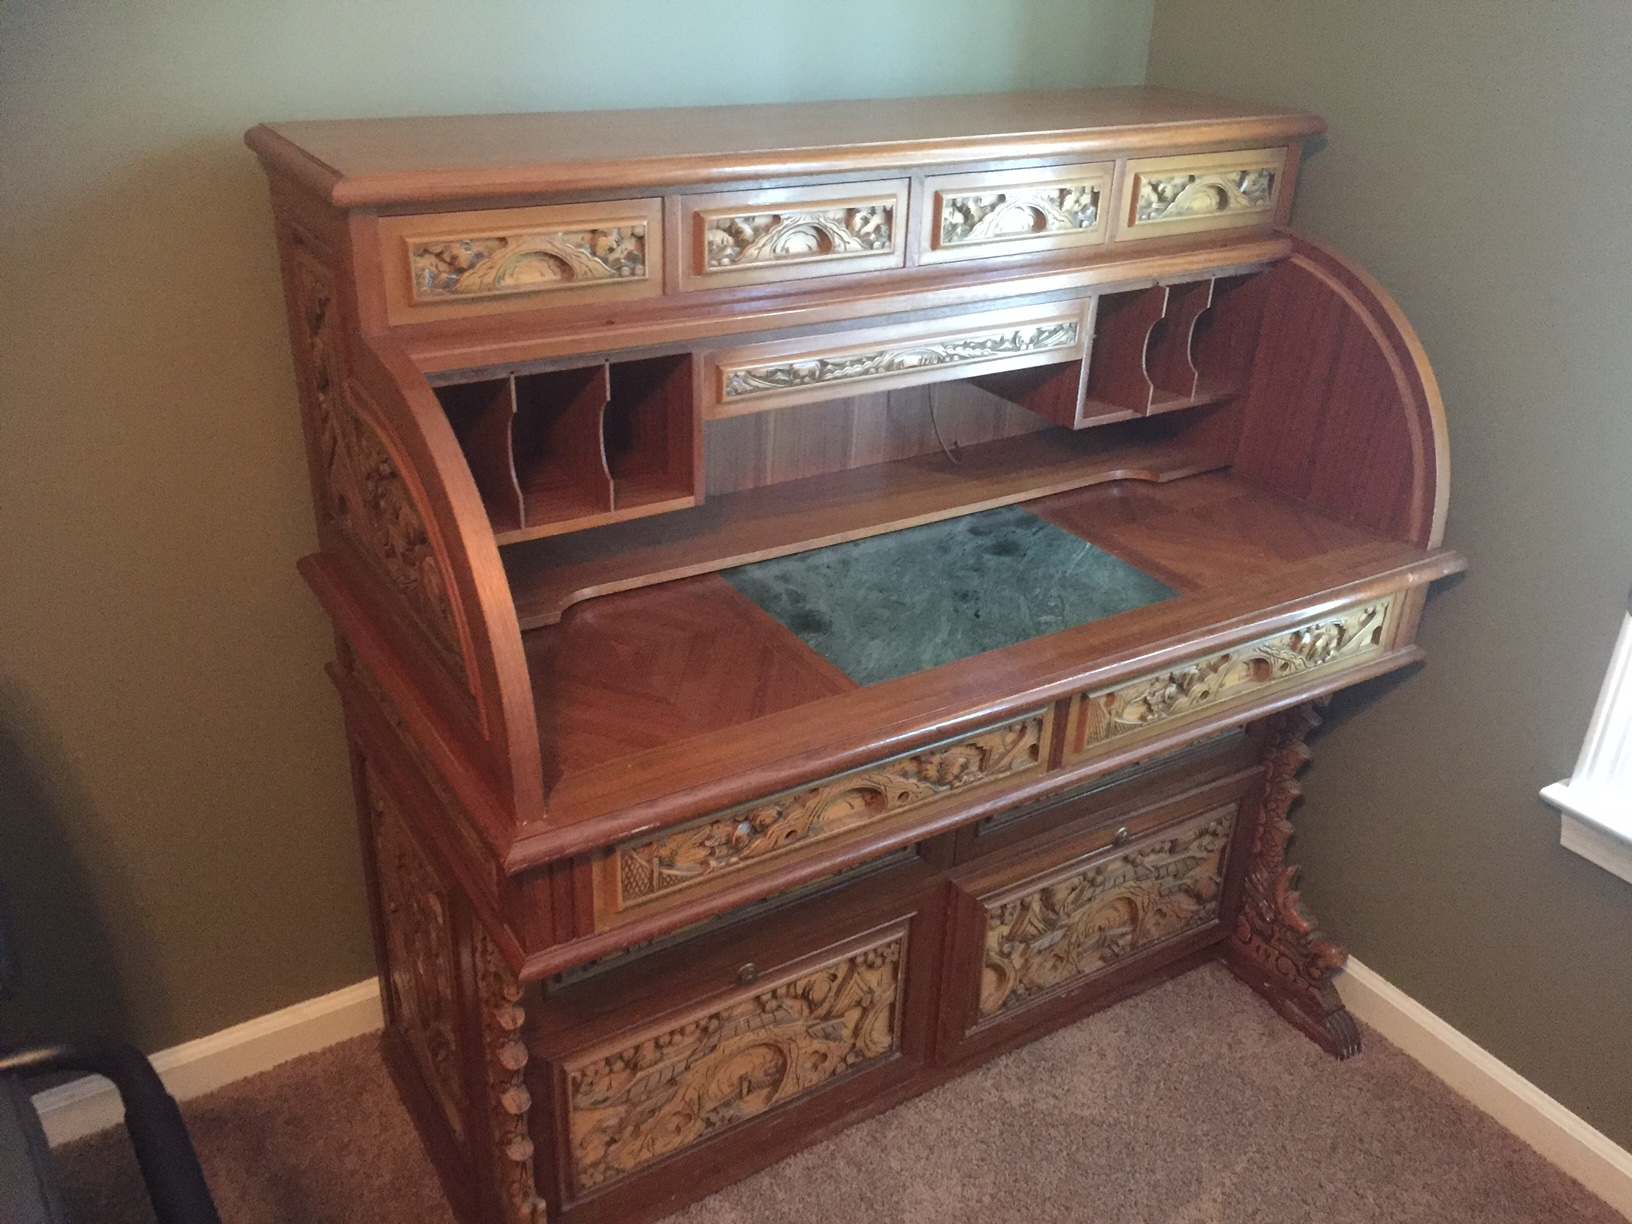 Rollup Desk For Sale  Antiquesm  Classifieds. Thin Bedside Table. Small Desk Ikea. Shoes Drawer. Contemporary Dining Table Set. Bunk Beds With Desk Underneath For Sale. Solid Wood Home Office Desk. How To Build A Treadmill Desk. 8 Ft Table